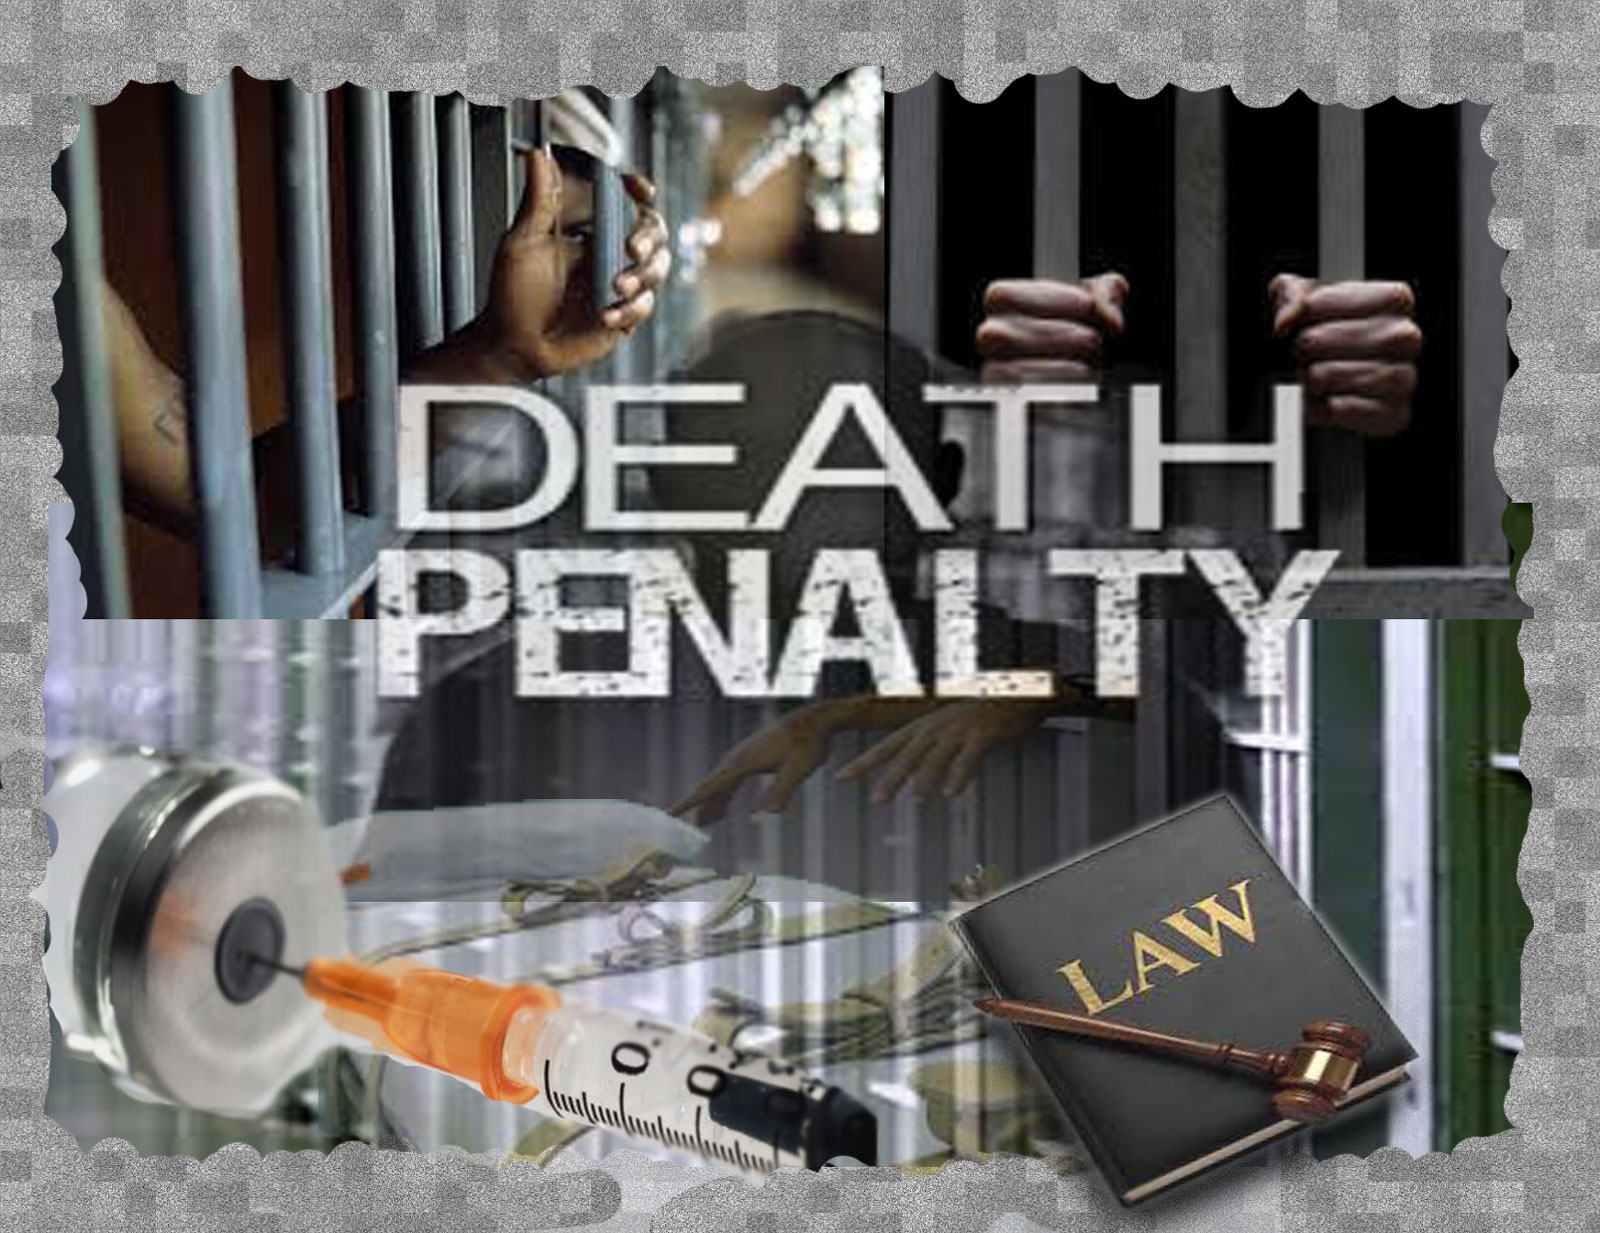 DEATH PENALTY- WHAT WOULD JUDGE POSNER DO?